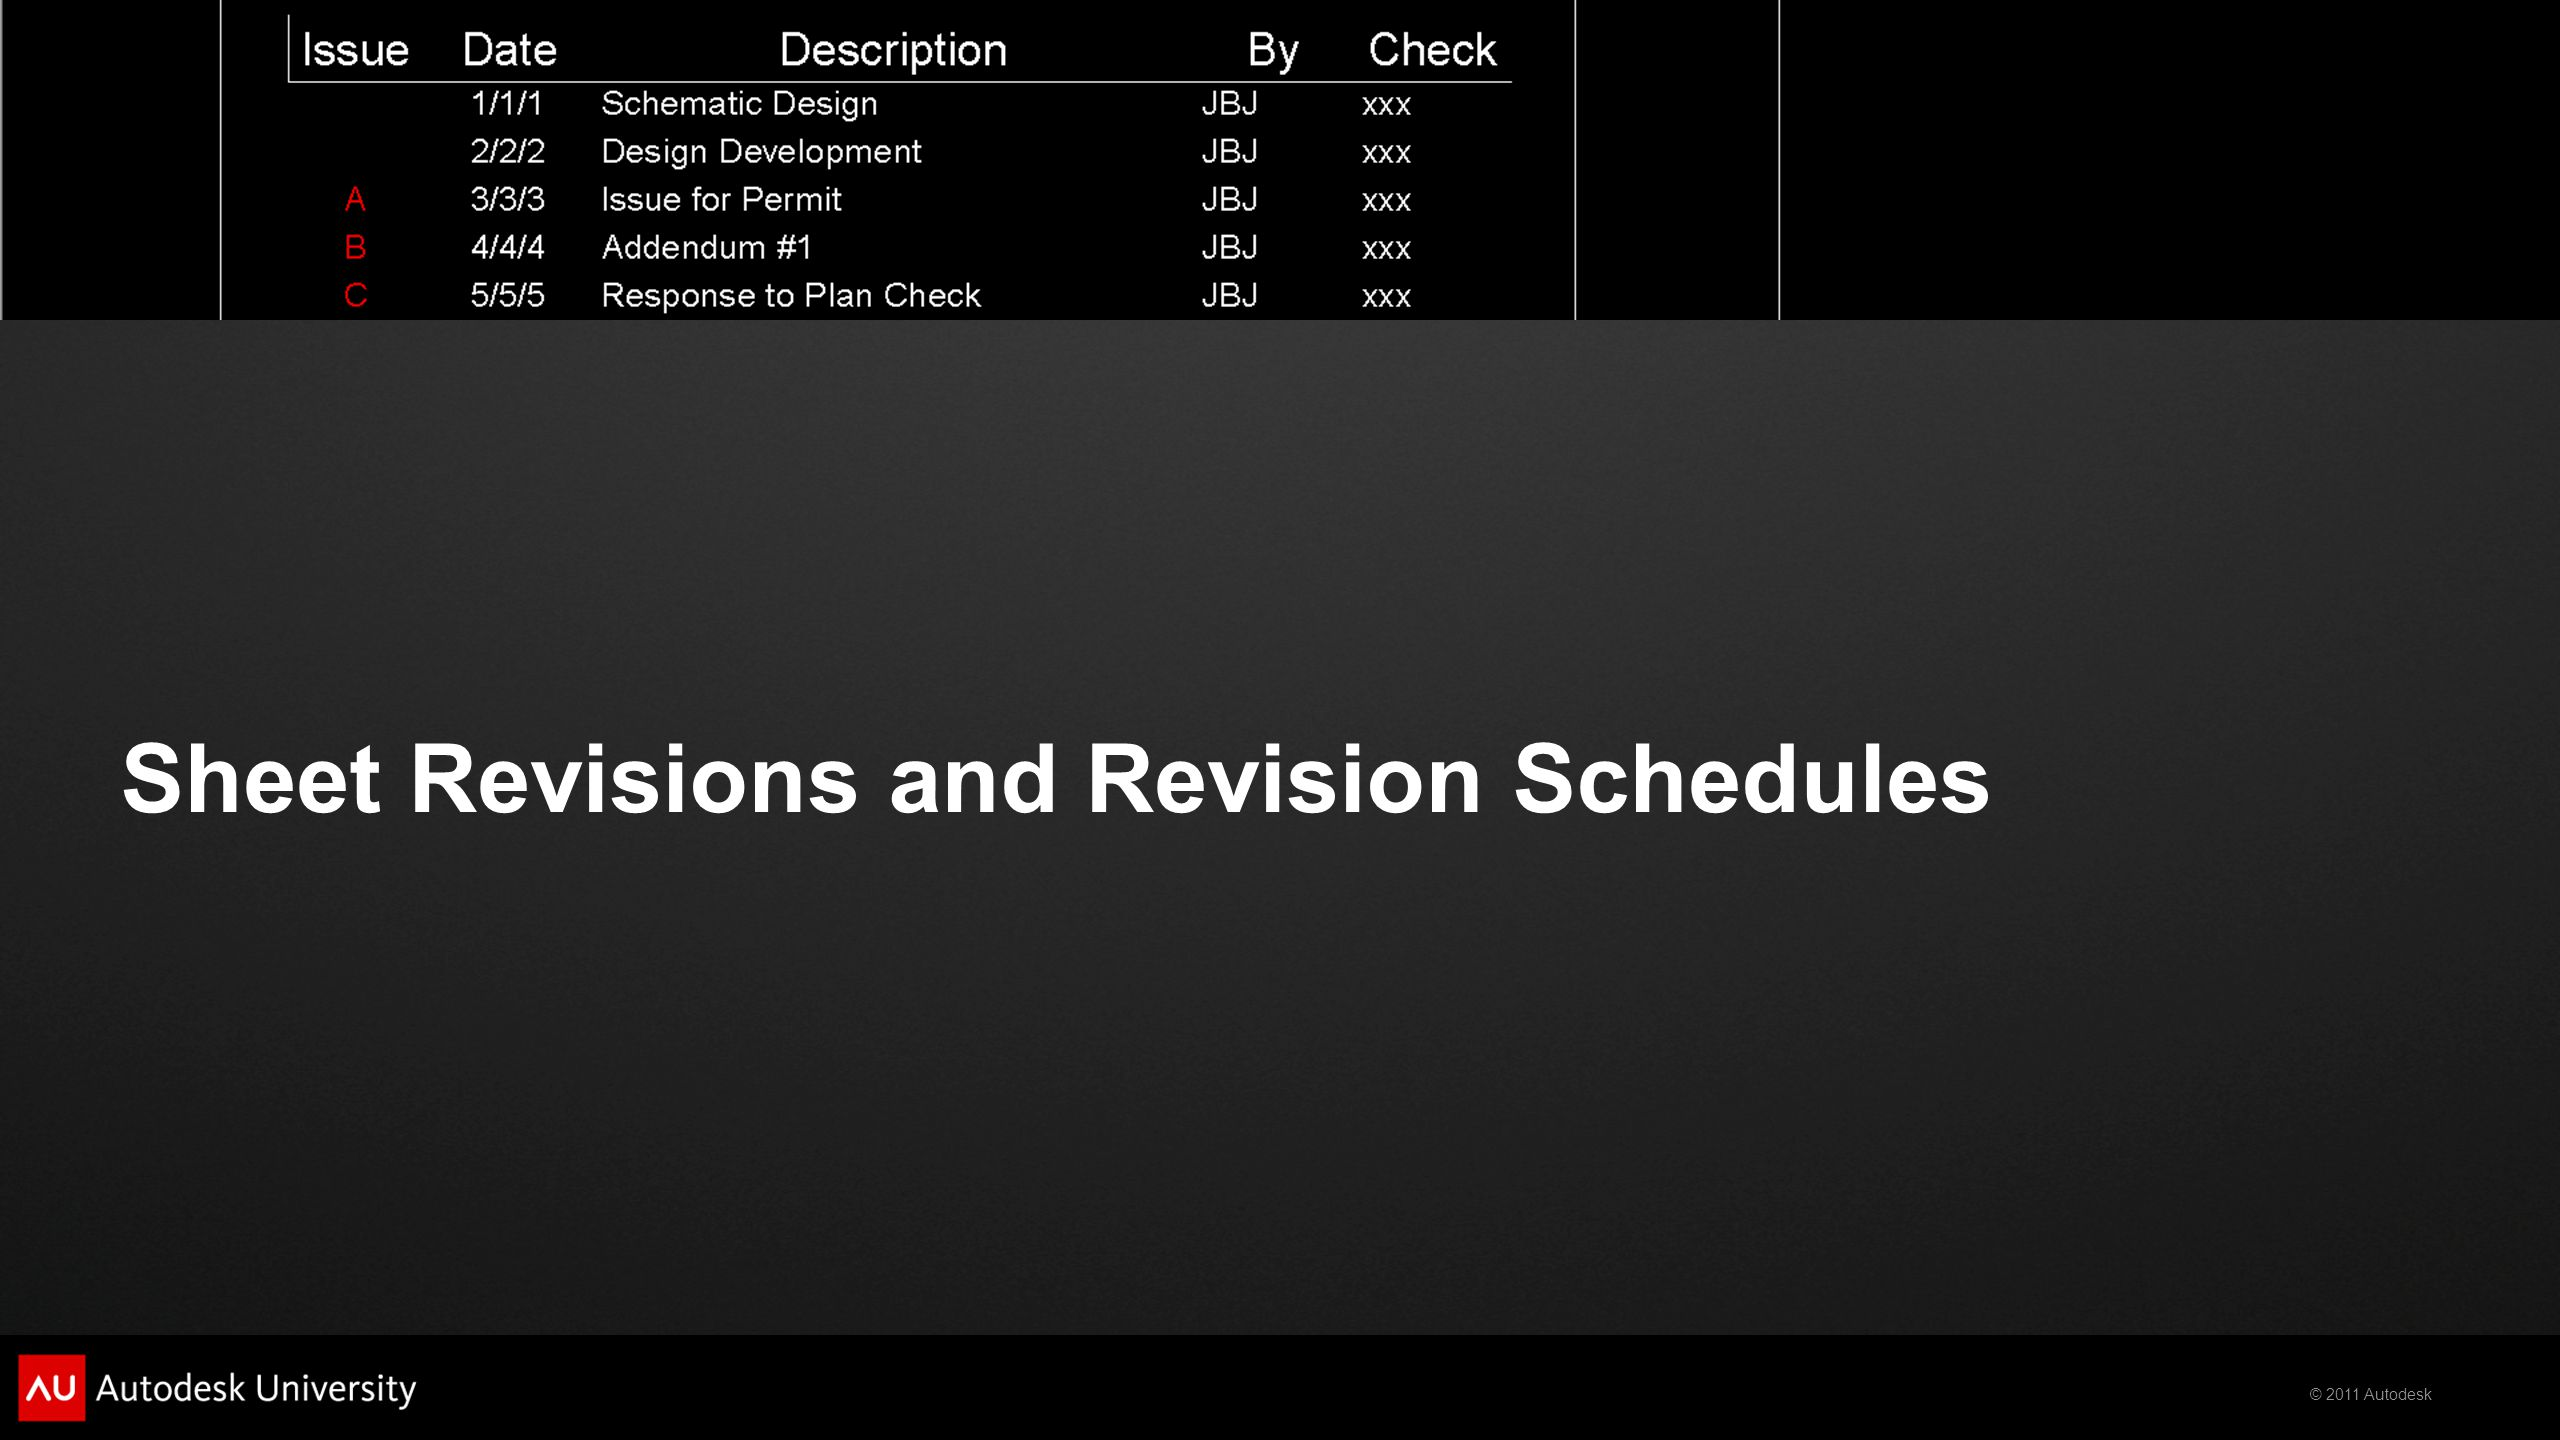 © 2011 Autodesk  Creating a revision schedule on a sheet  Issuing a full set  Revision Indices Sheet Revisions and Revision Schedules